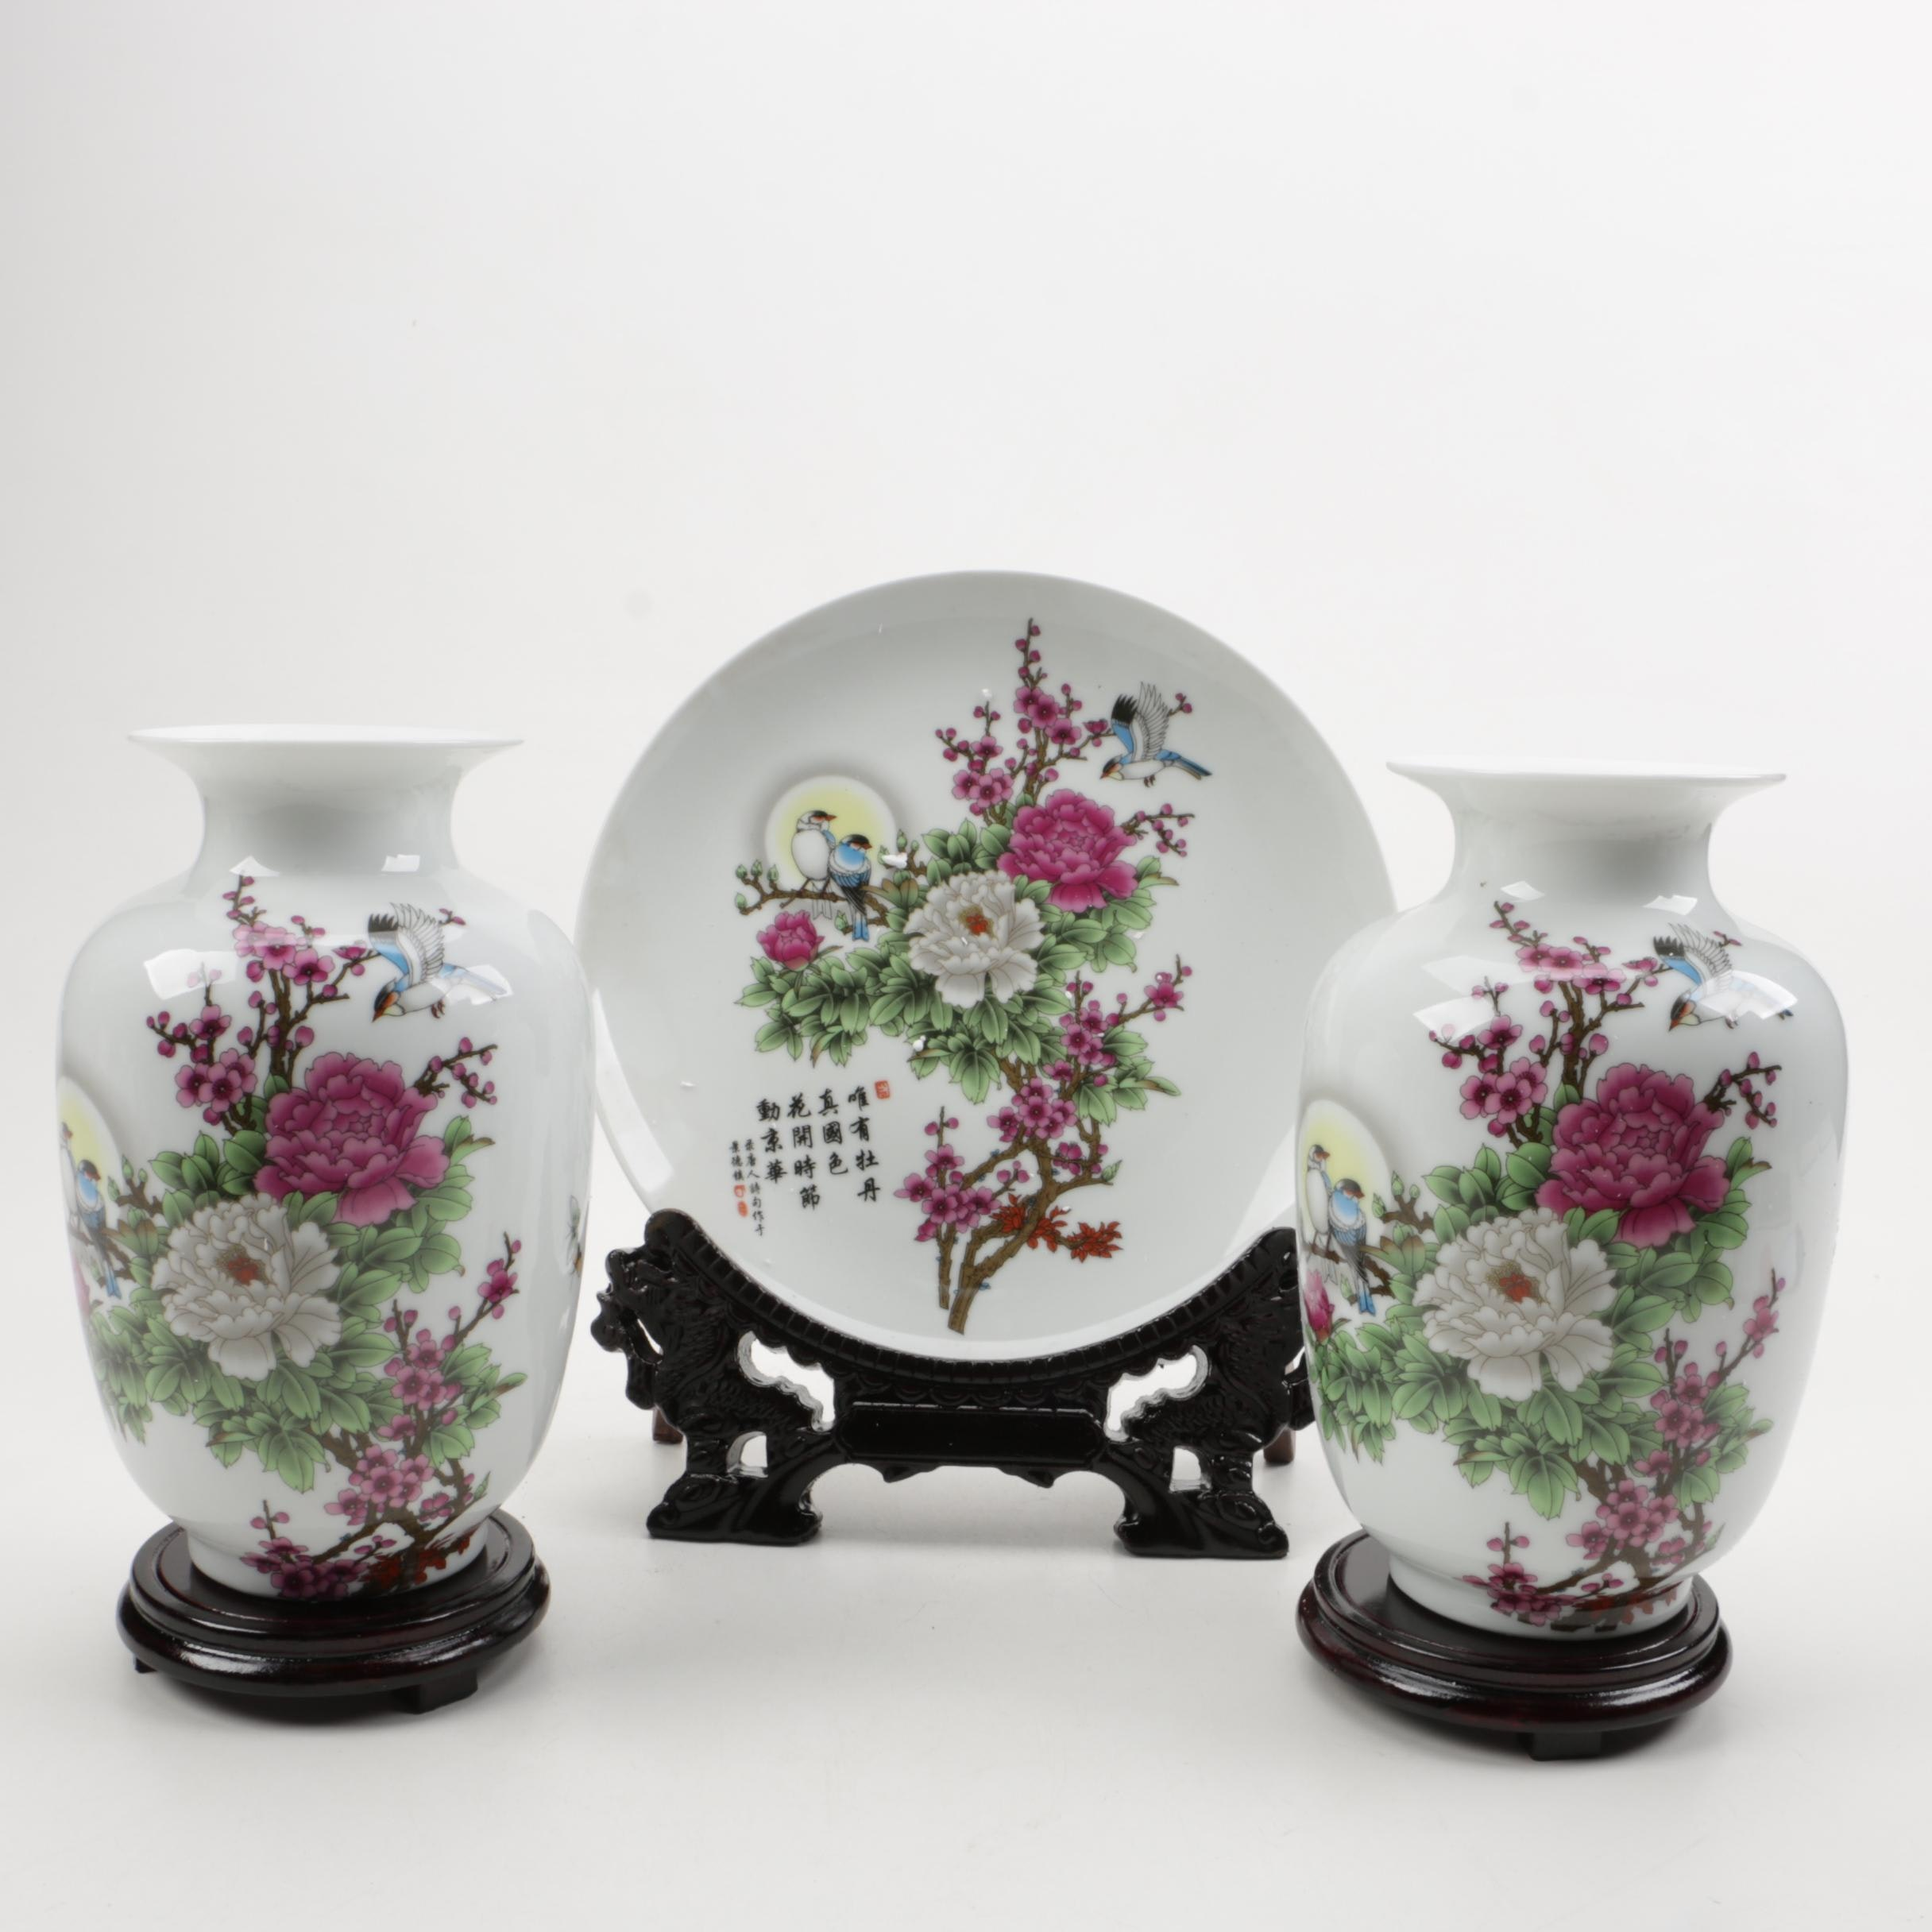 Assortment of Asian Vases and Plate